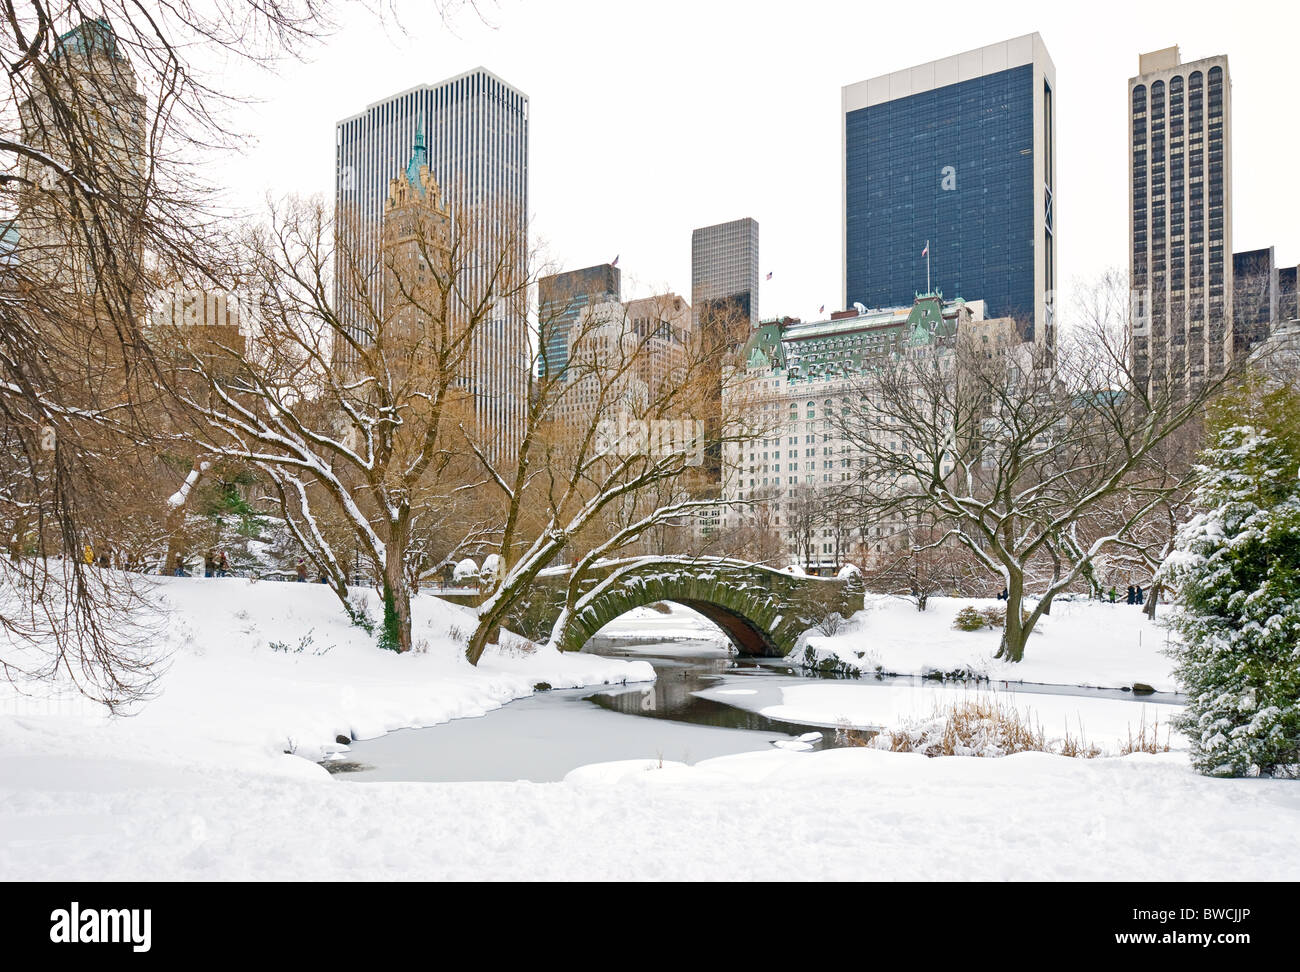 Winter Snow In Central Park New York City With The Plaza